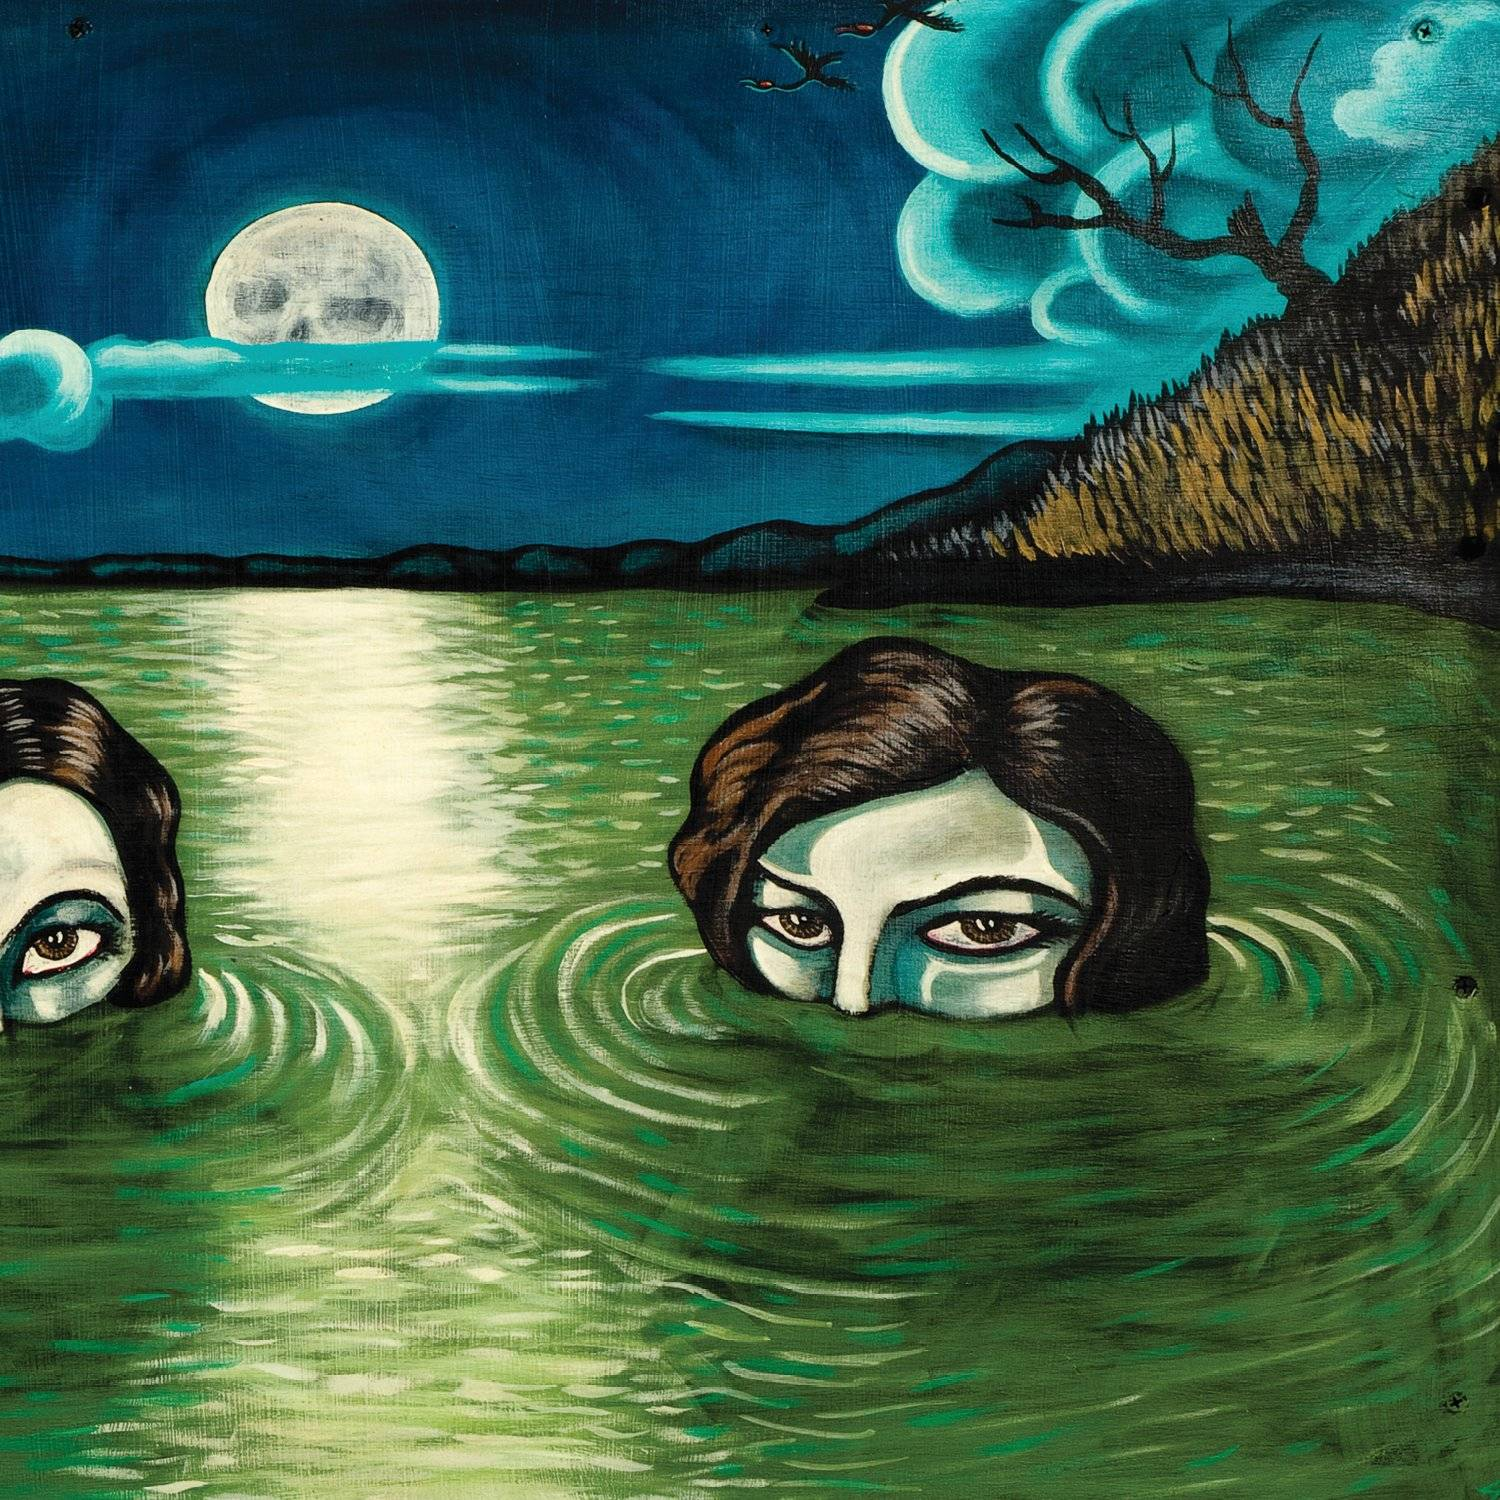 """English Oceans"" is the latest release by Drive-By Truckers."